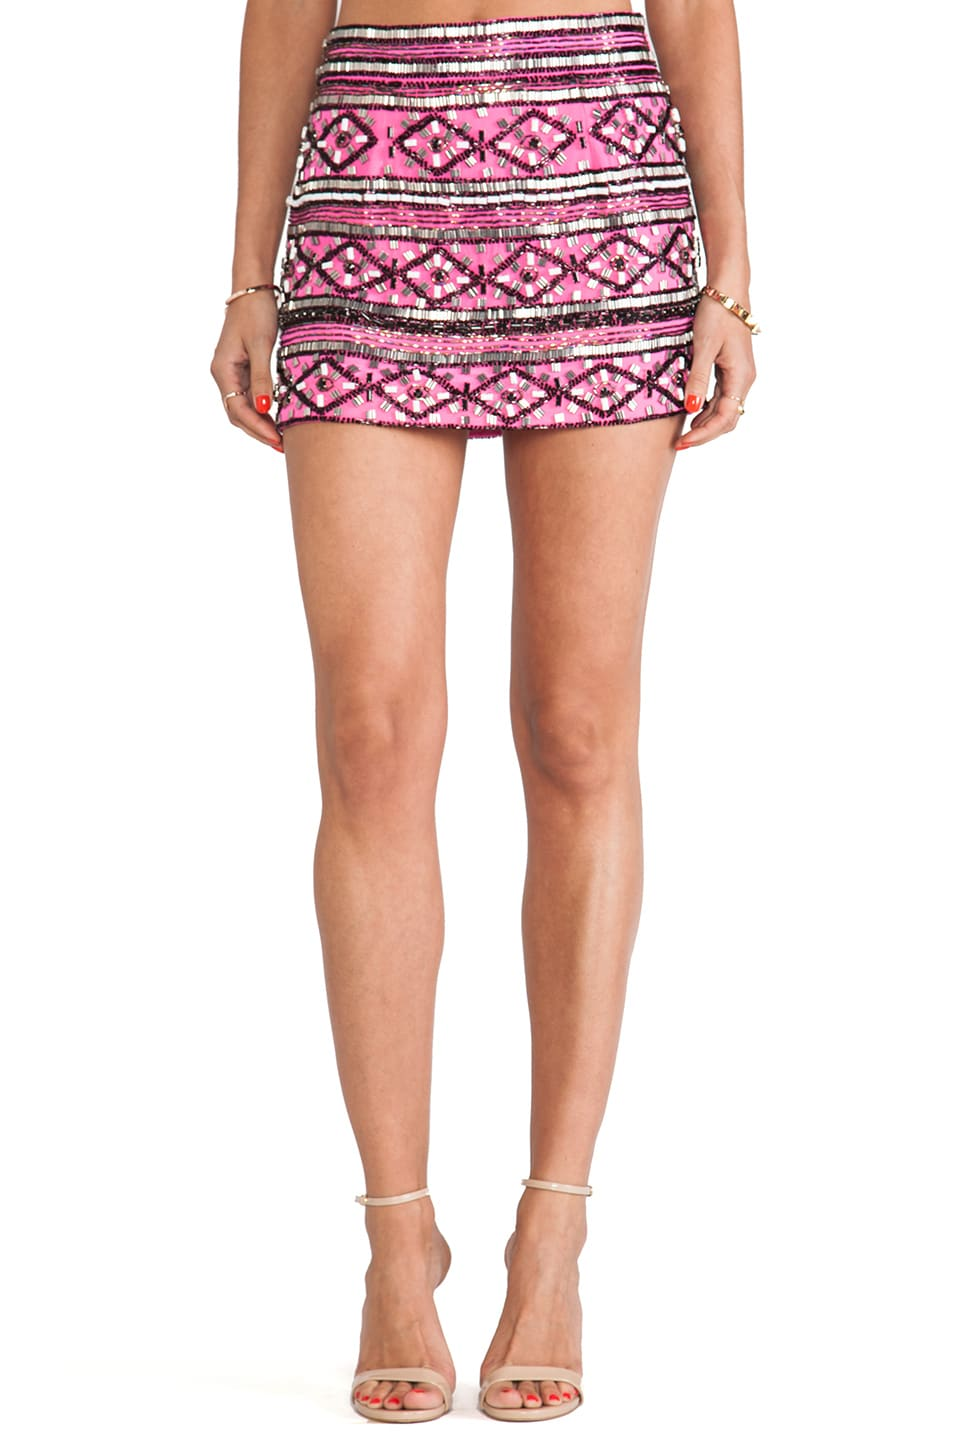 Karina Grimaldi Drew Beaded Mini Skirt in Mexican Pink